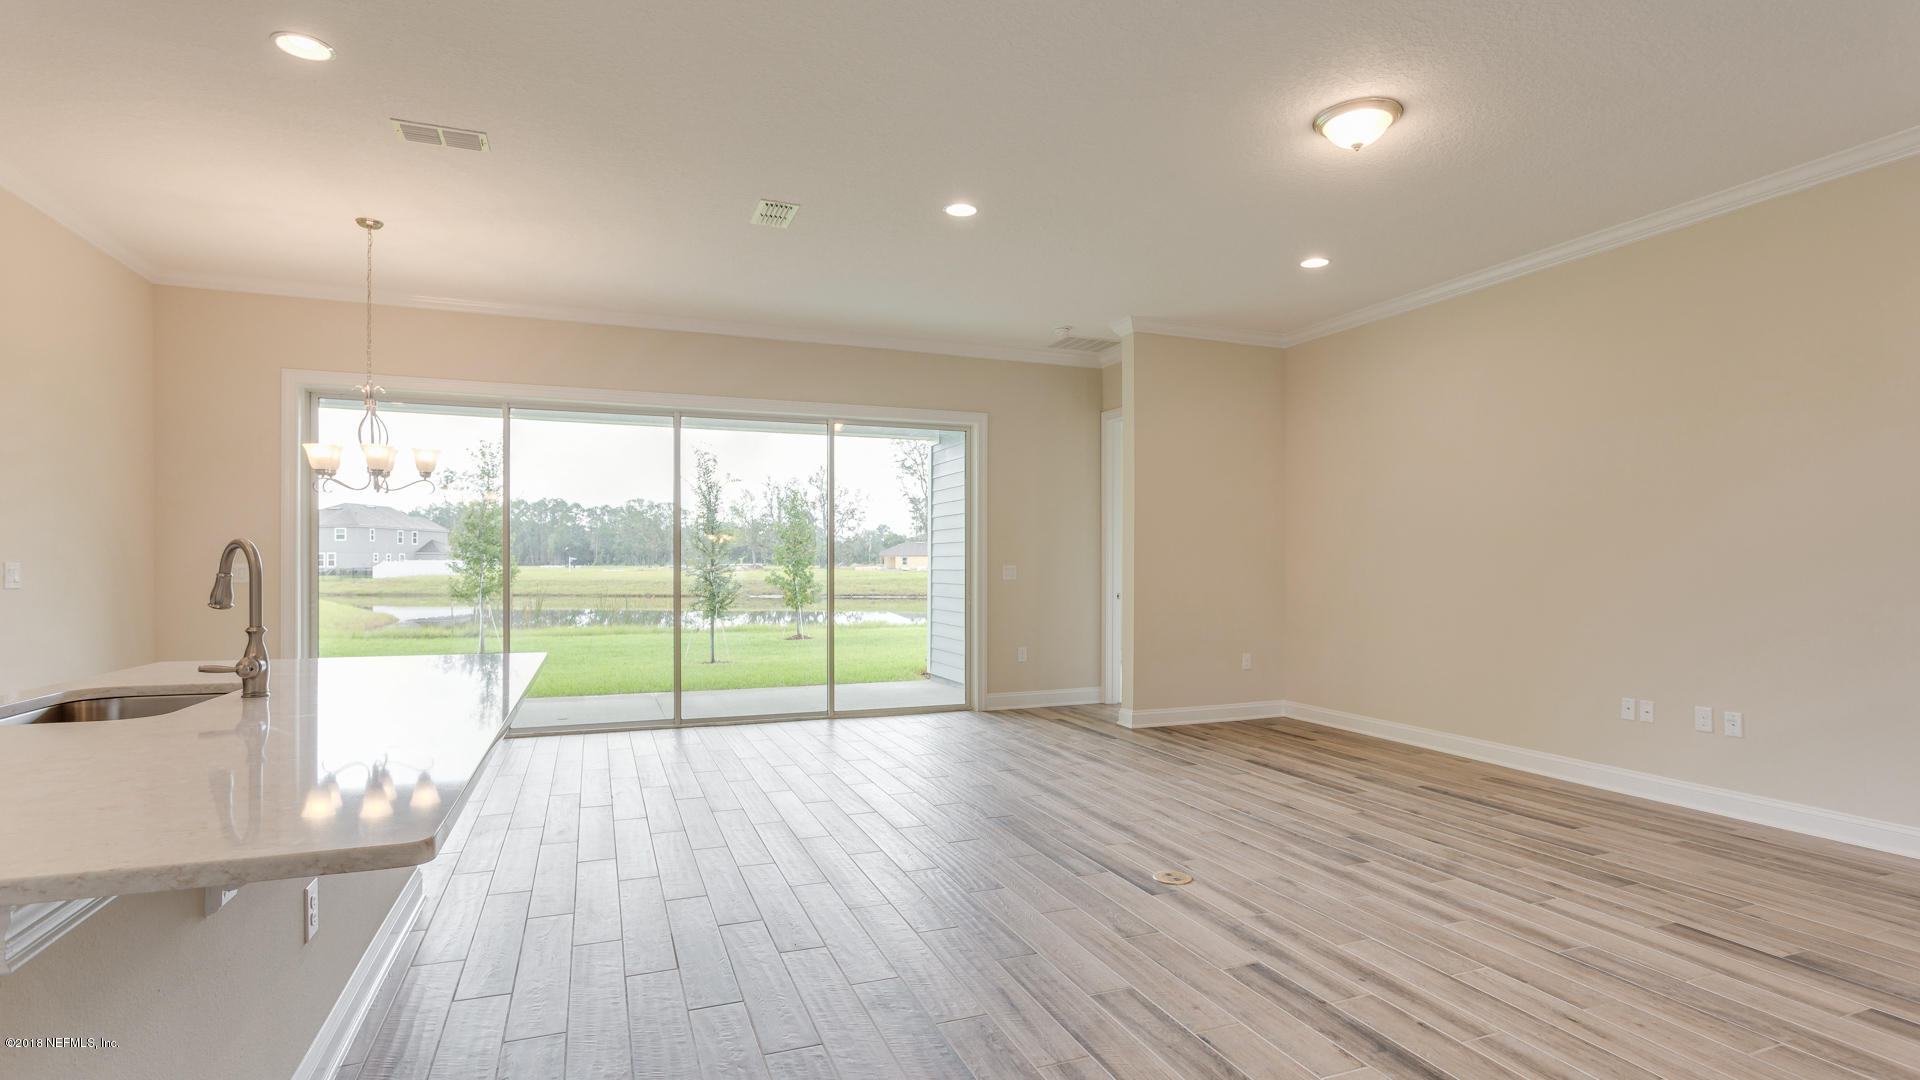 3024 FREE BIRD, GREEN COVE SPRINGS, FLORIDA 32043, 4 Bedrooms Bedrooms, ,3 BathroomsBathrooms,Residential - single family,For sale,FREE BIRD,911988